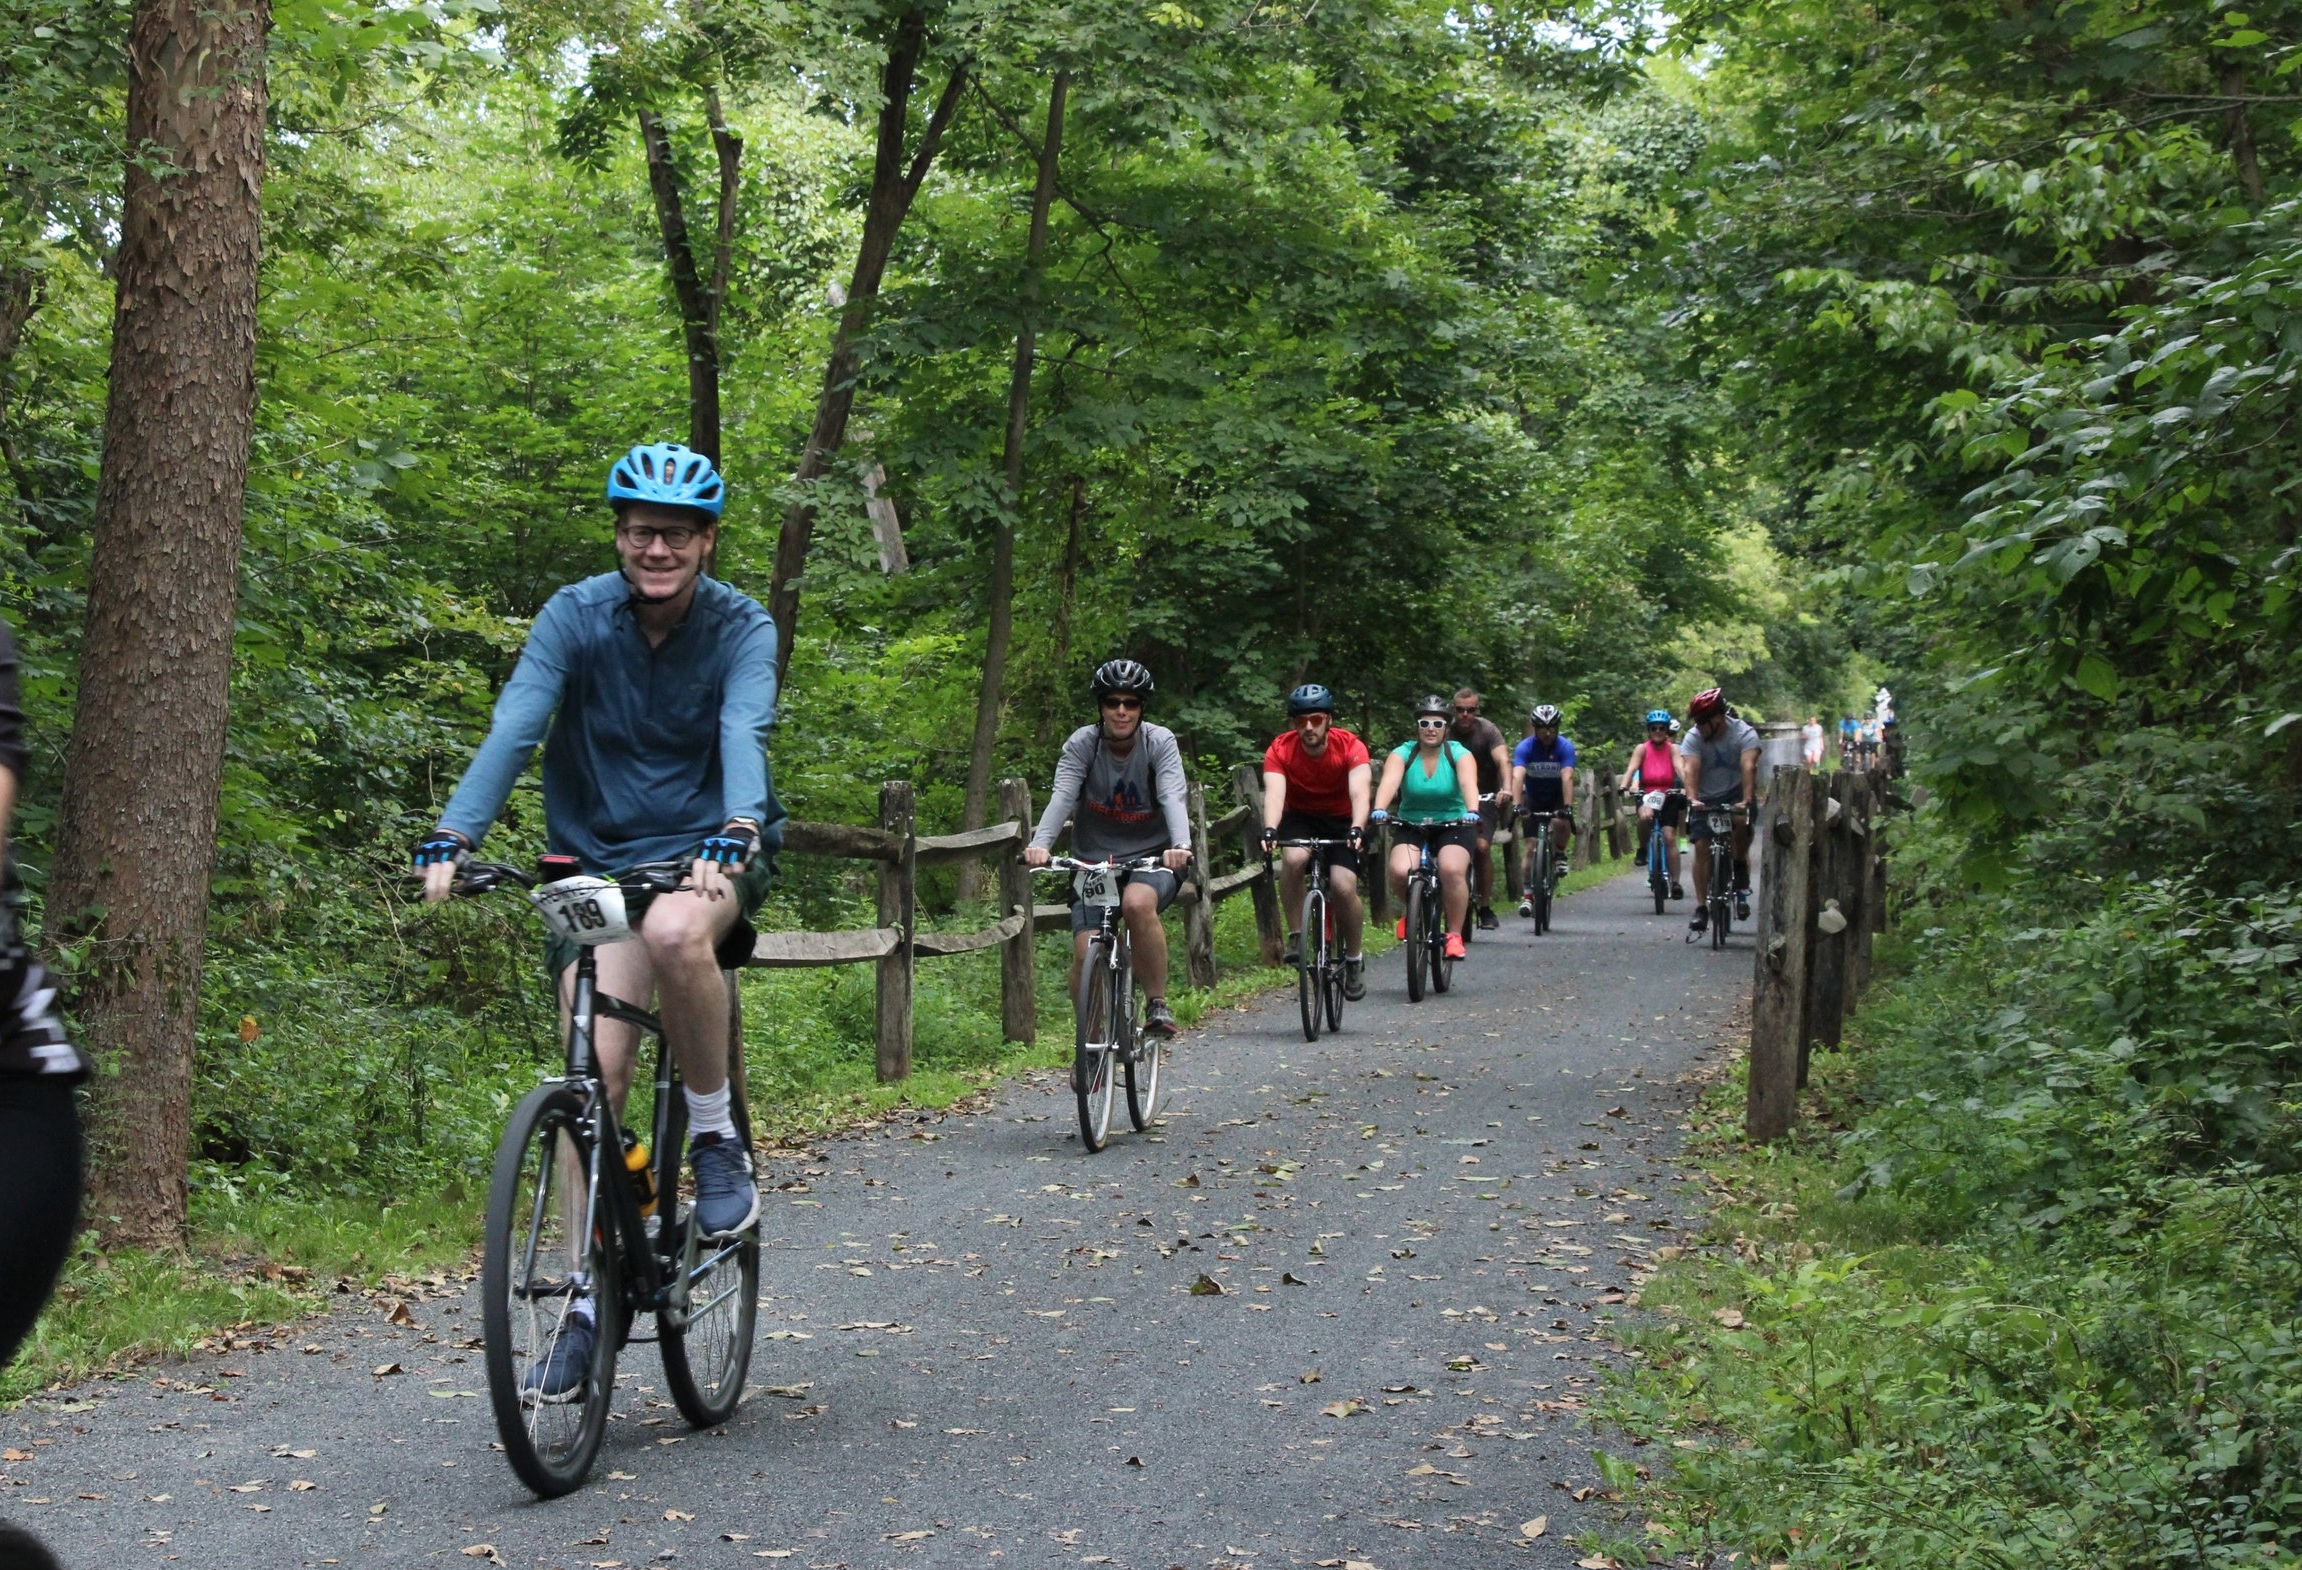 Ride along the beautiful Perkiomen Trail